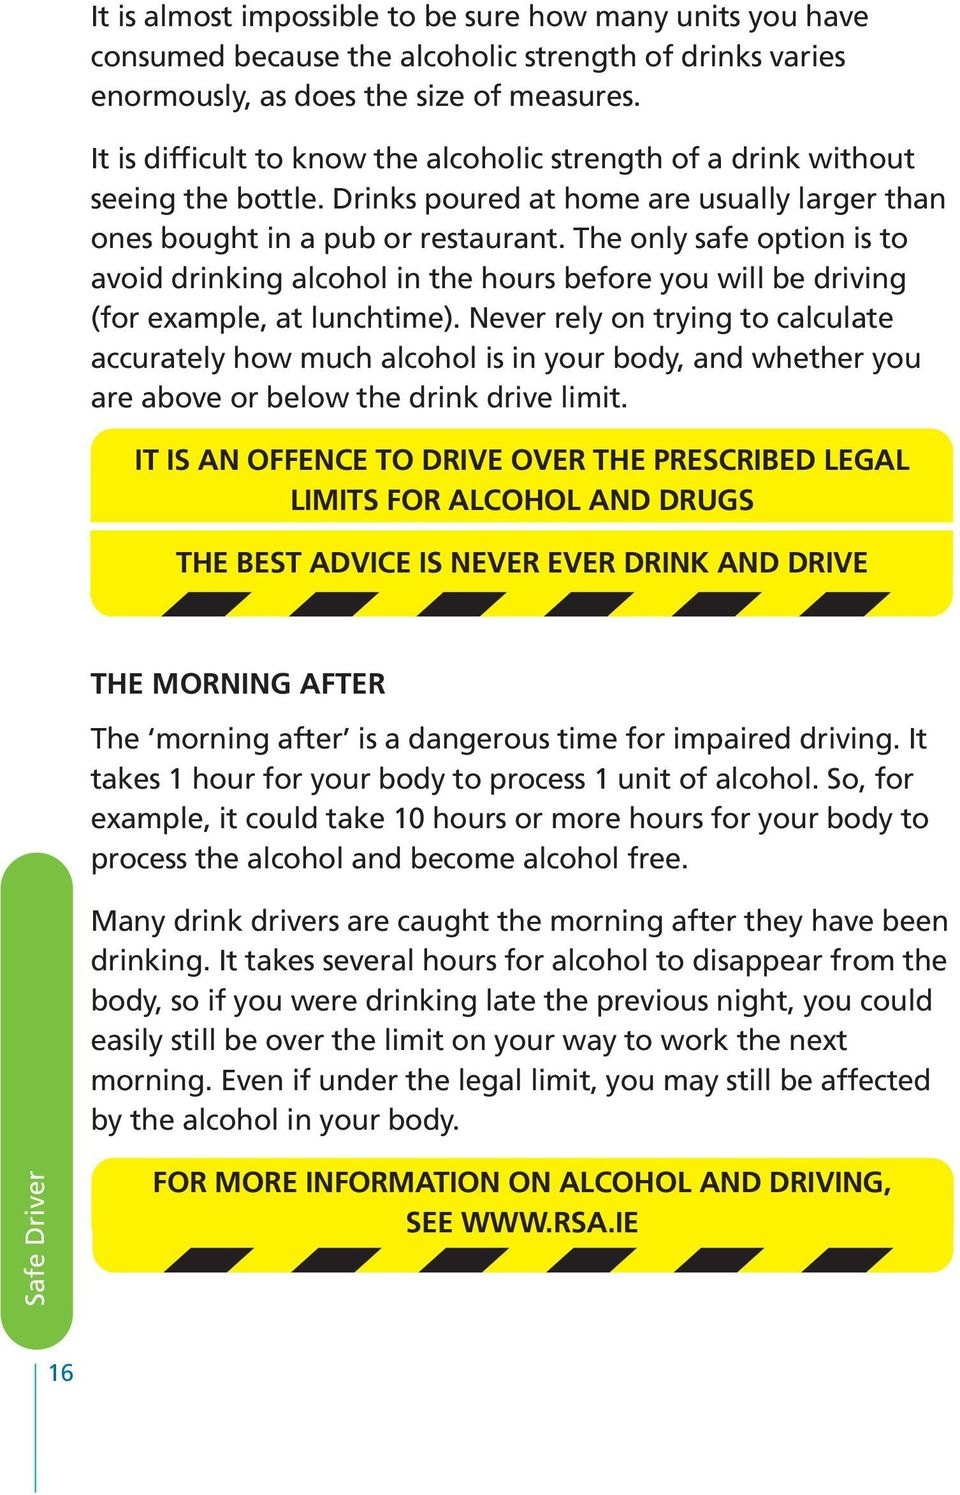 The only safe option is to avoid drinking alcohol in the hours before you will be driving (for example, at lunchtime).